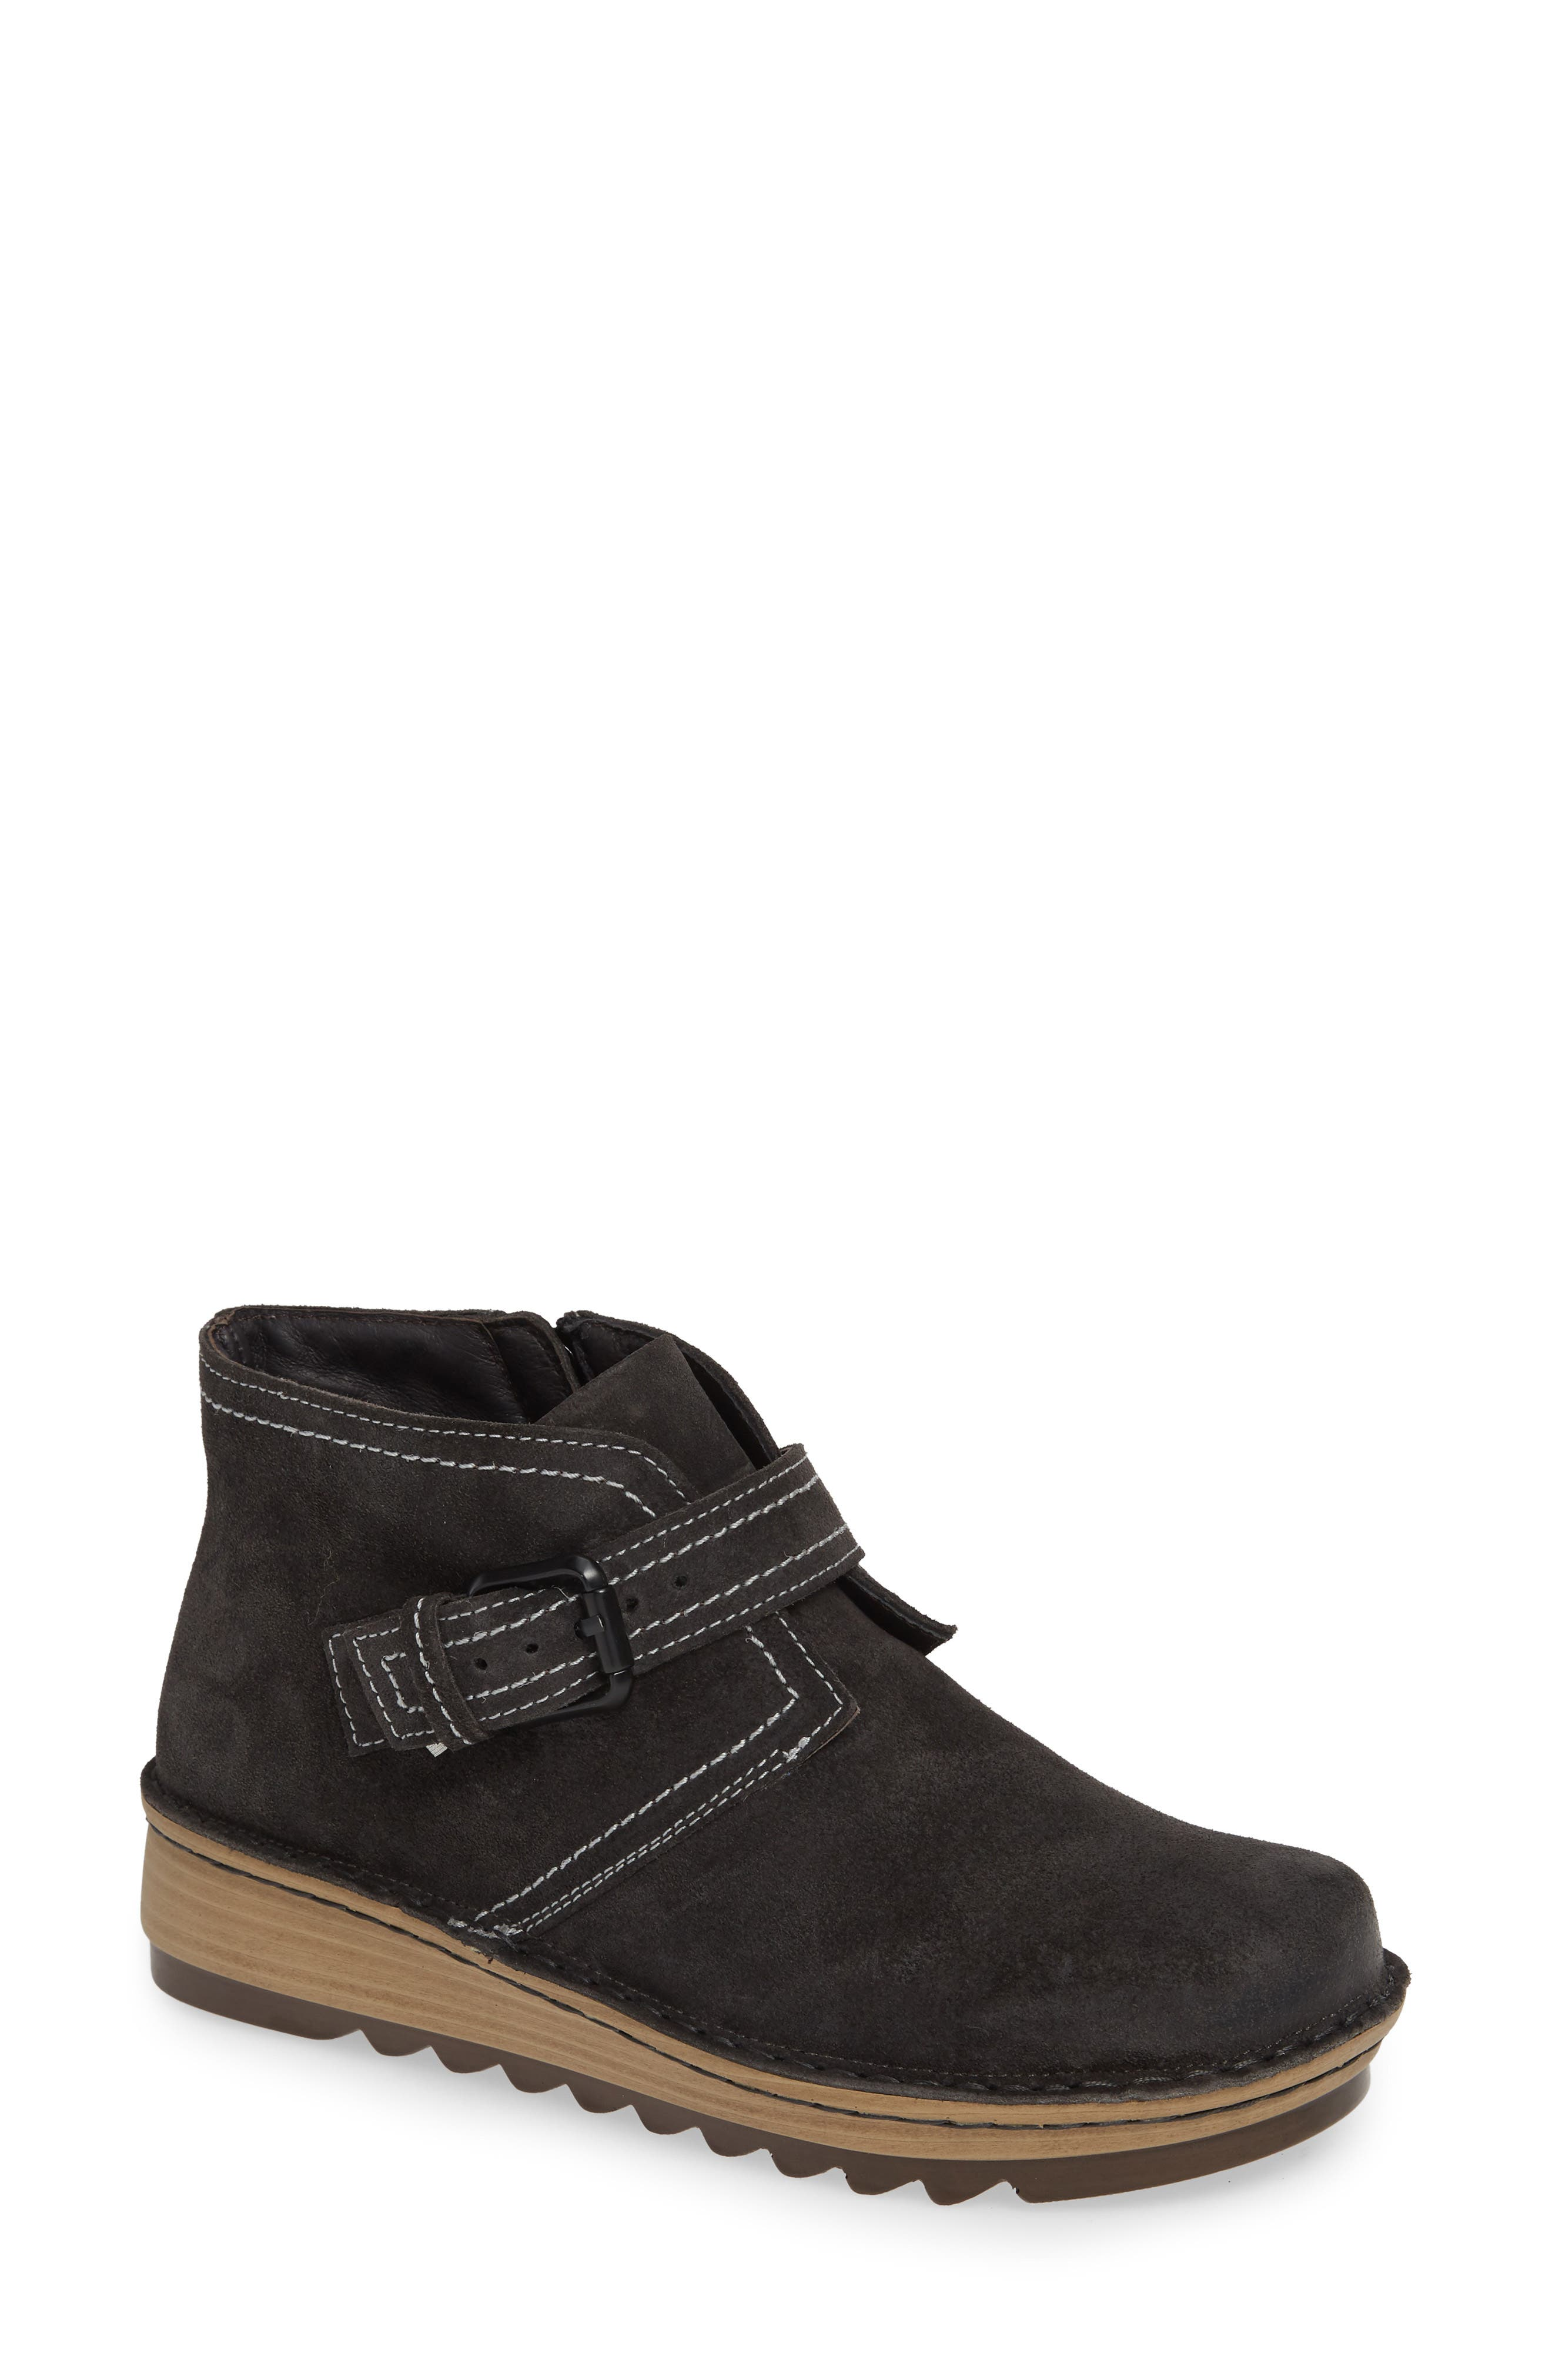 Louisa Wedge Bootie, Main, color, OILY MIDNIGHT SUEDE